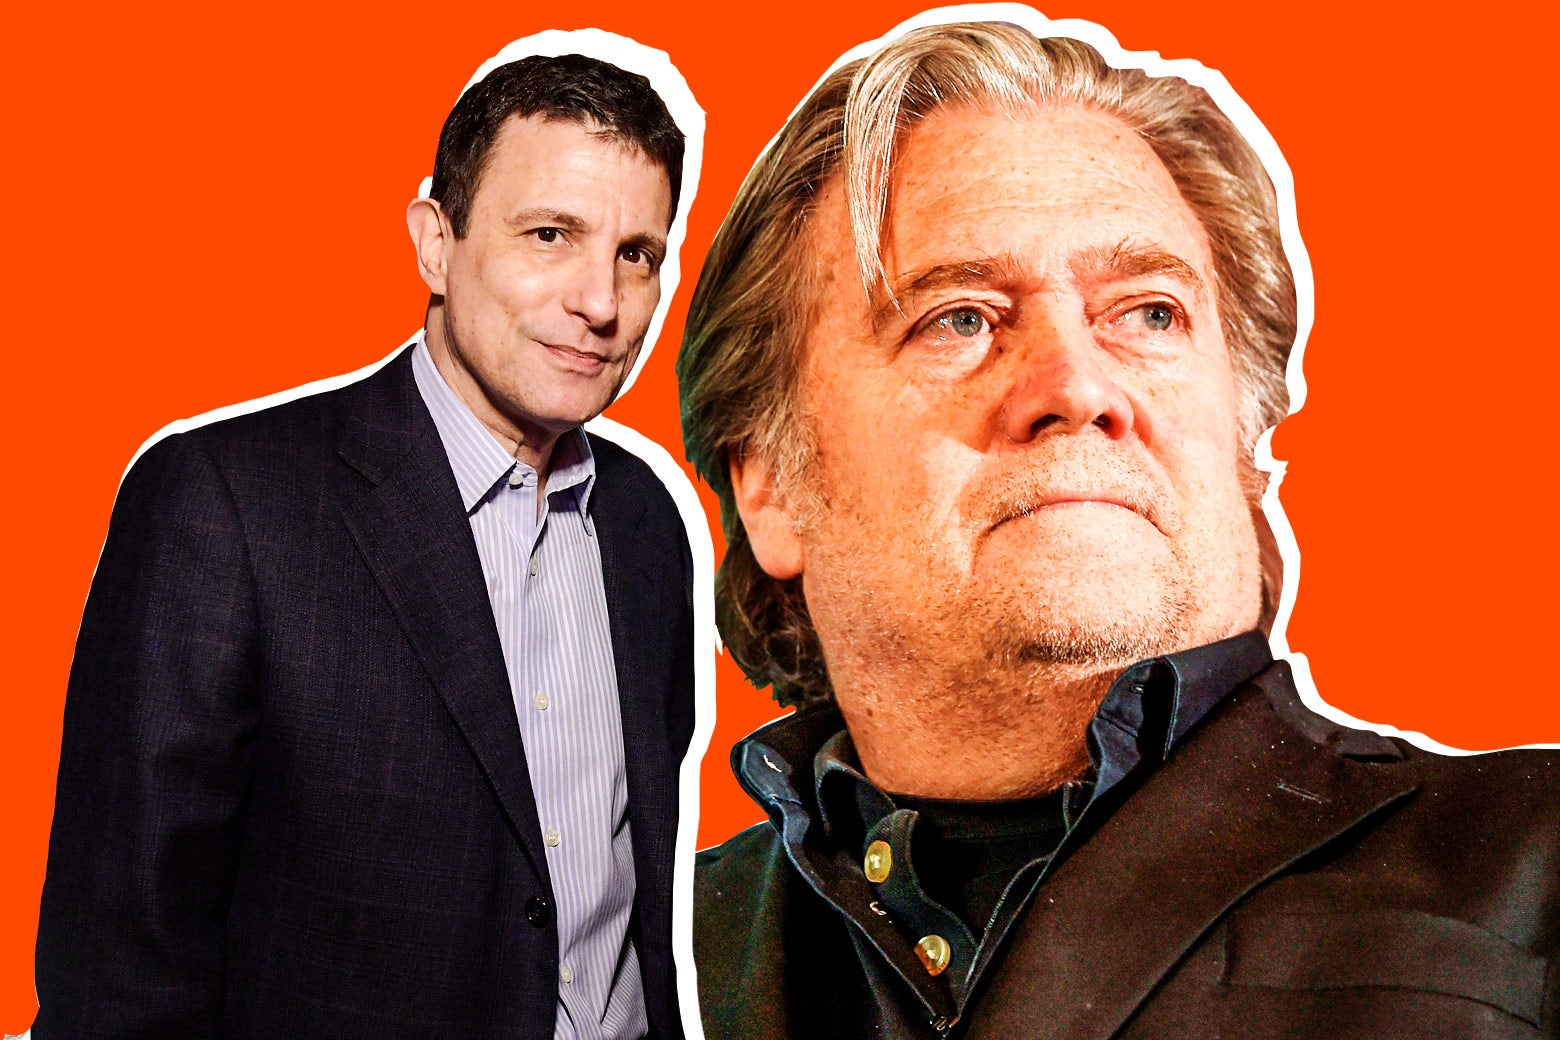 David Remnick and Steve Bannon.